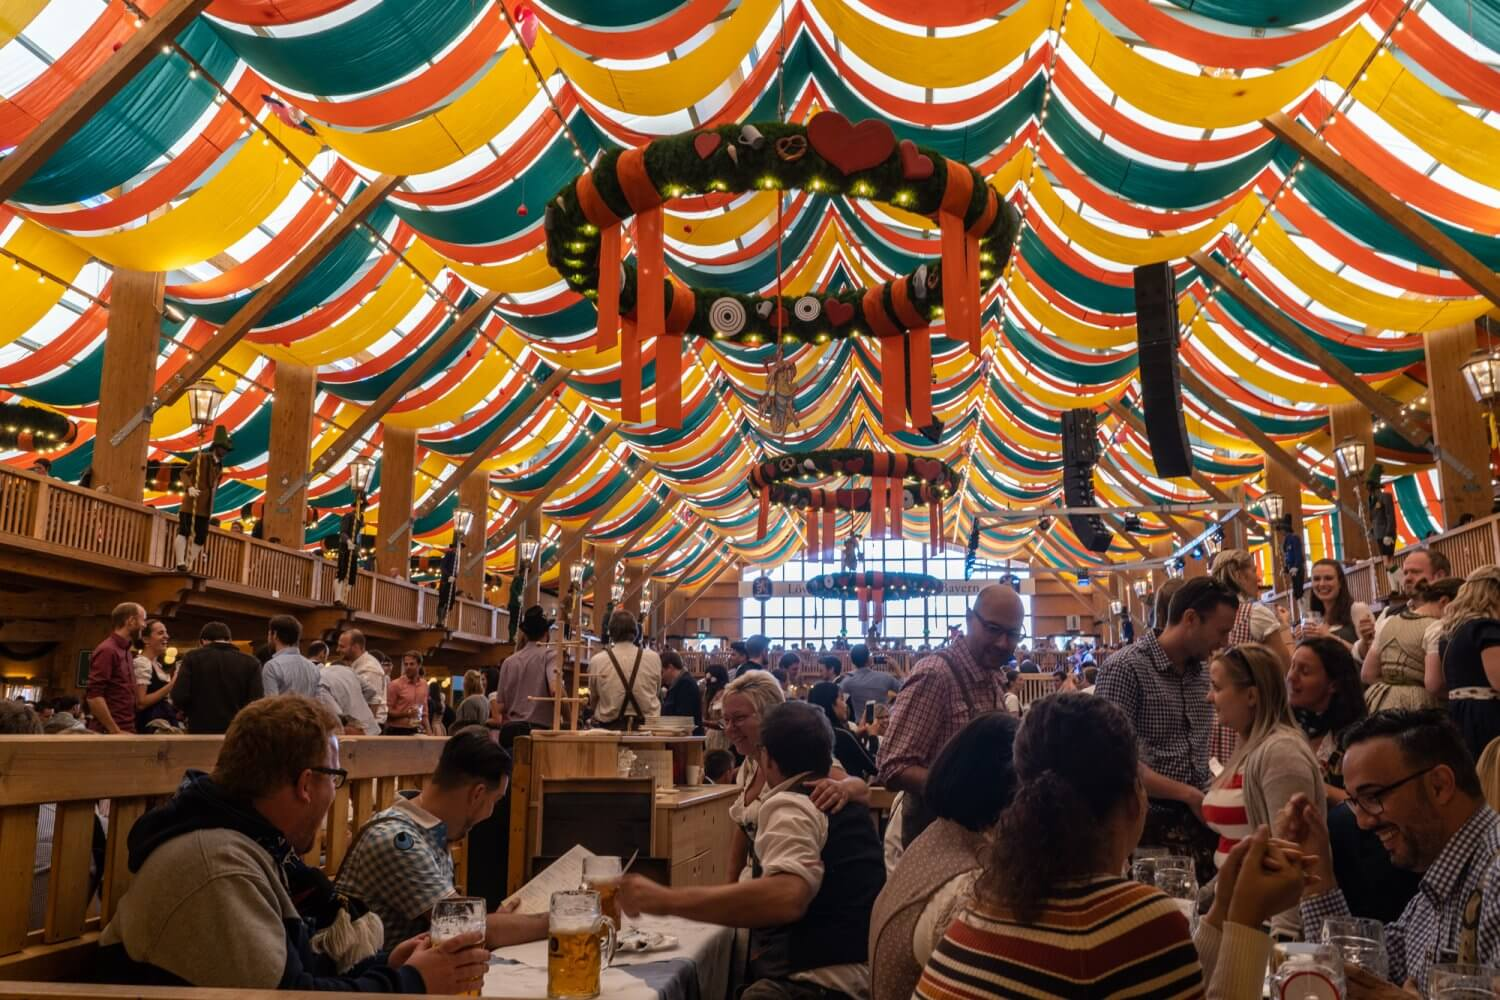 Schützen-Festzelt at Oktoberfest in Munich, Germany